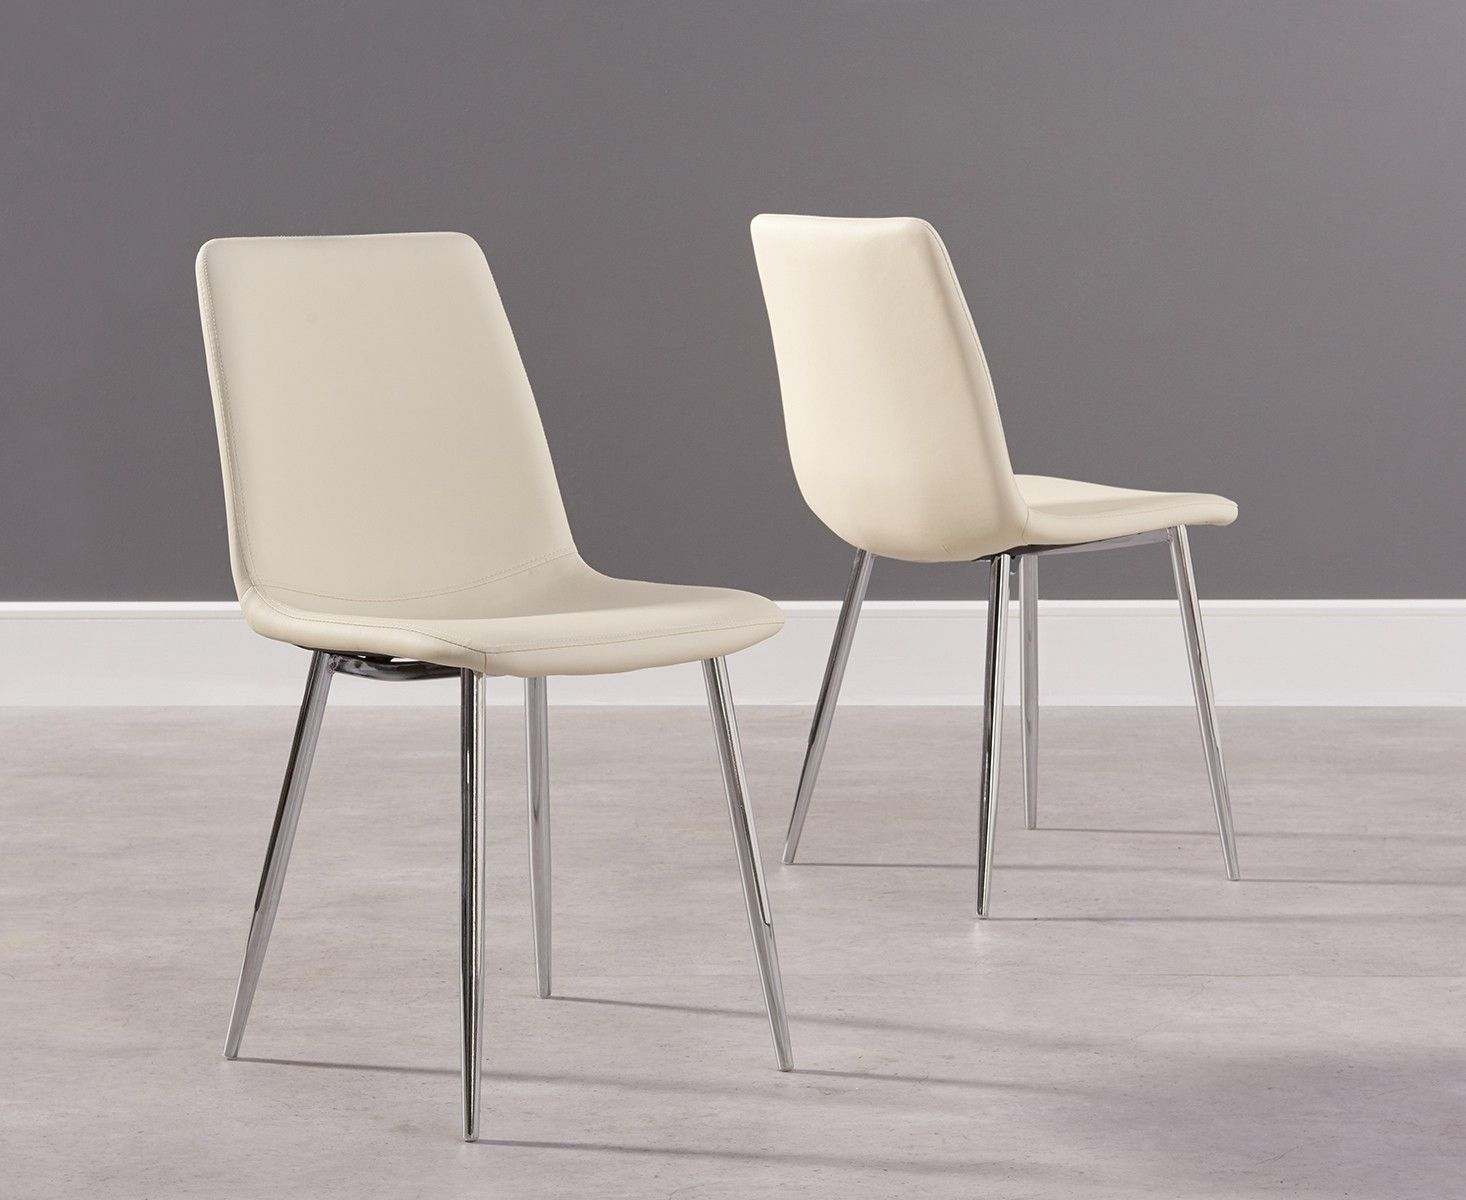 Faux Leather Dining Chairs With Chrome Legs | Faux leather ...